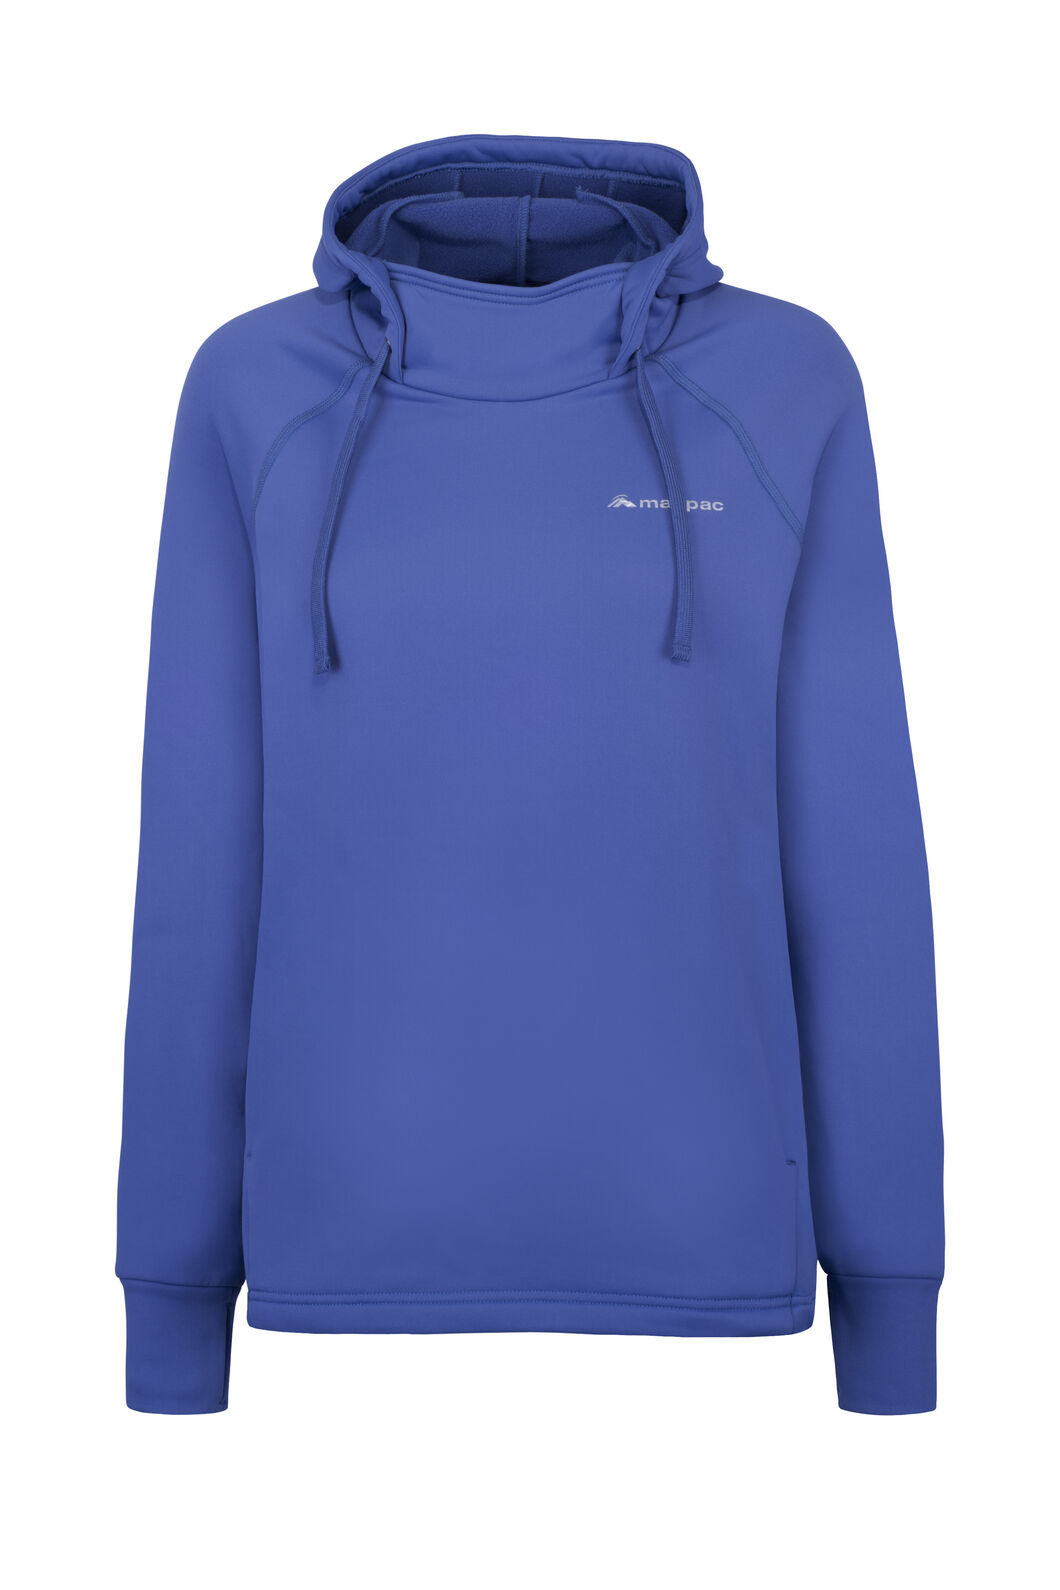 Macpac Traction Hooded Fleece Pullover — Women's, Marlin, hi-res